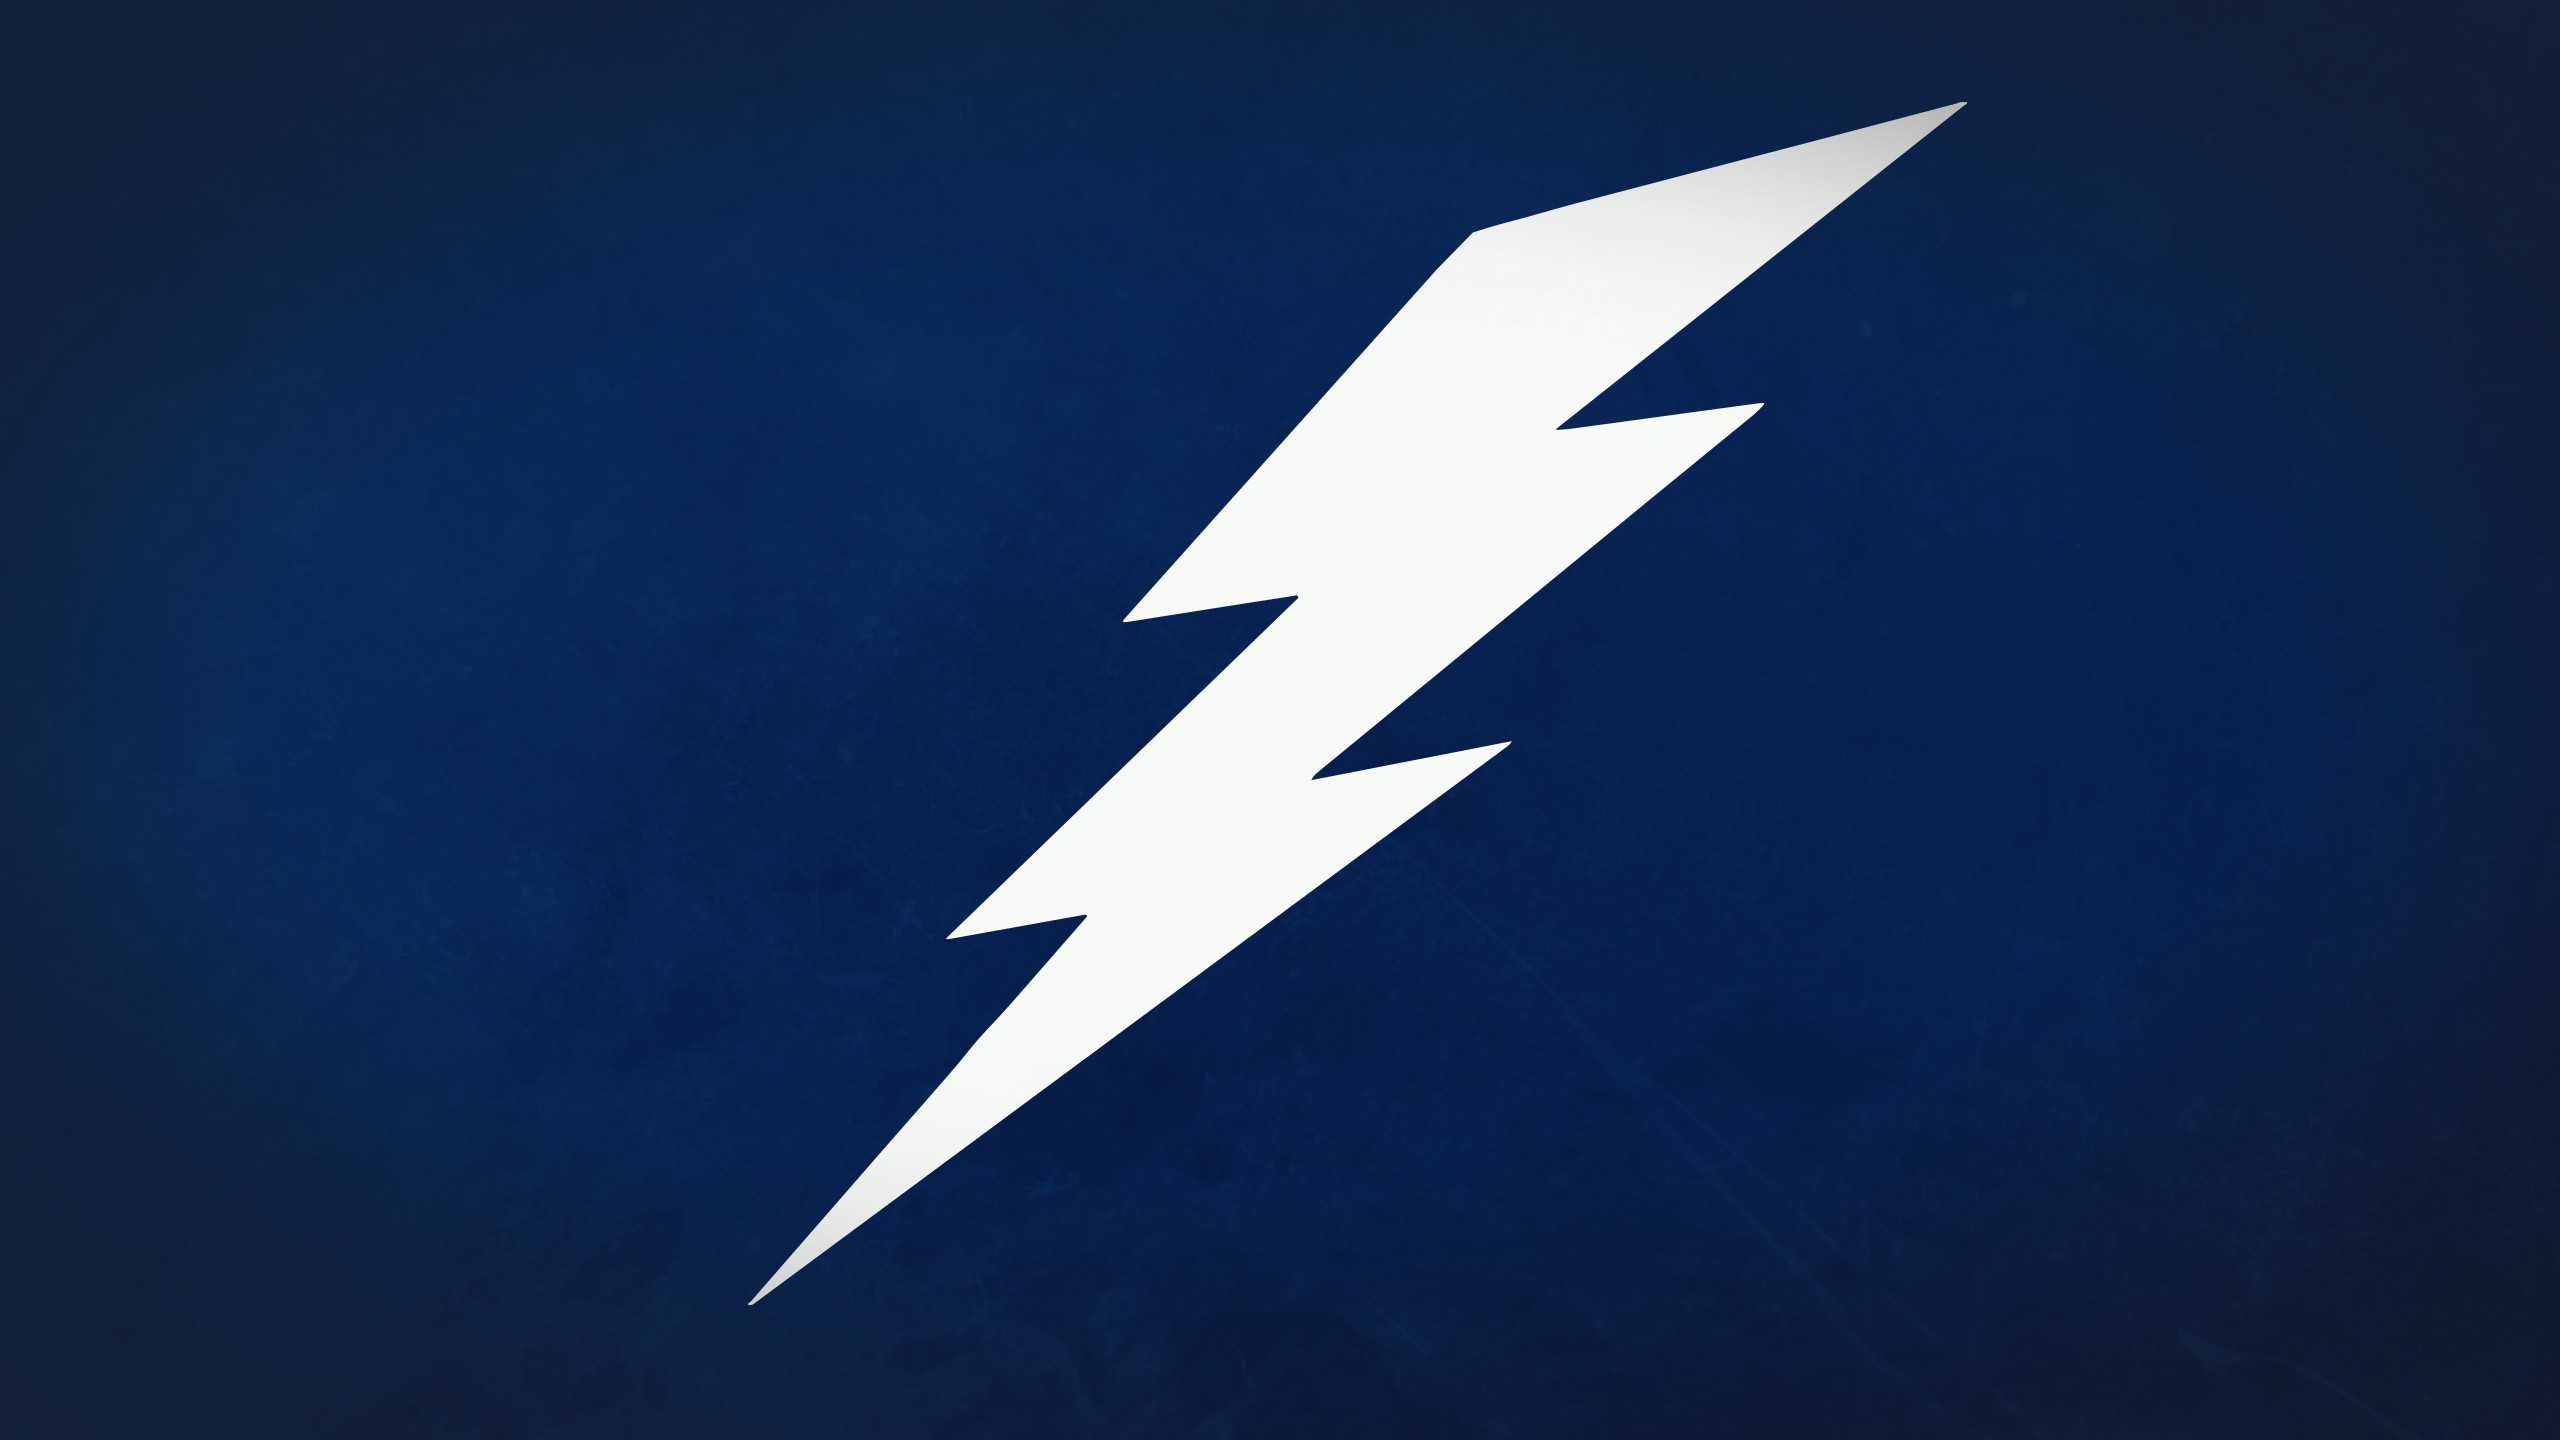 Tampa Bay Lightning Wallpapers Tampa Bay Lightning Backgrounds 2560x1440